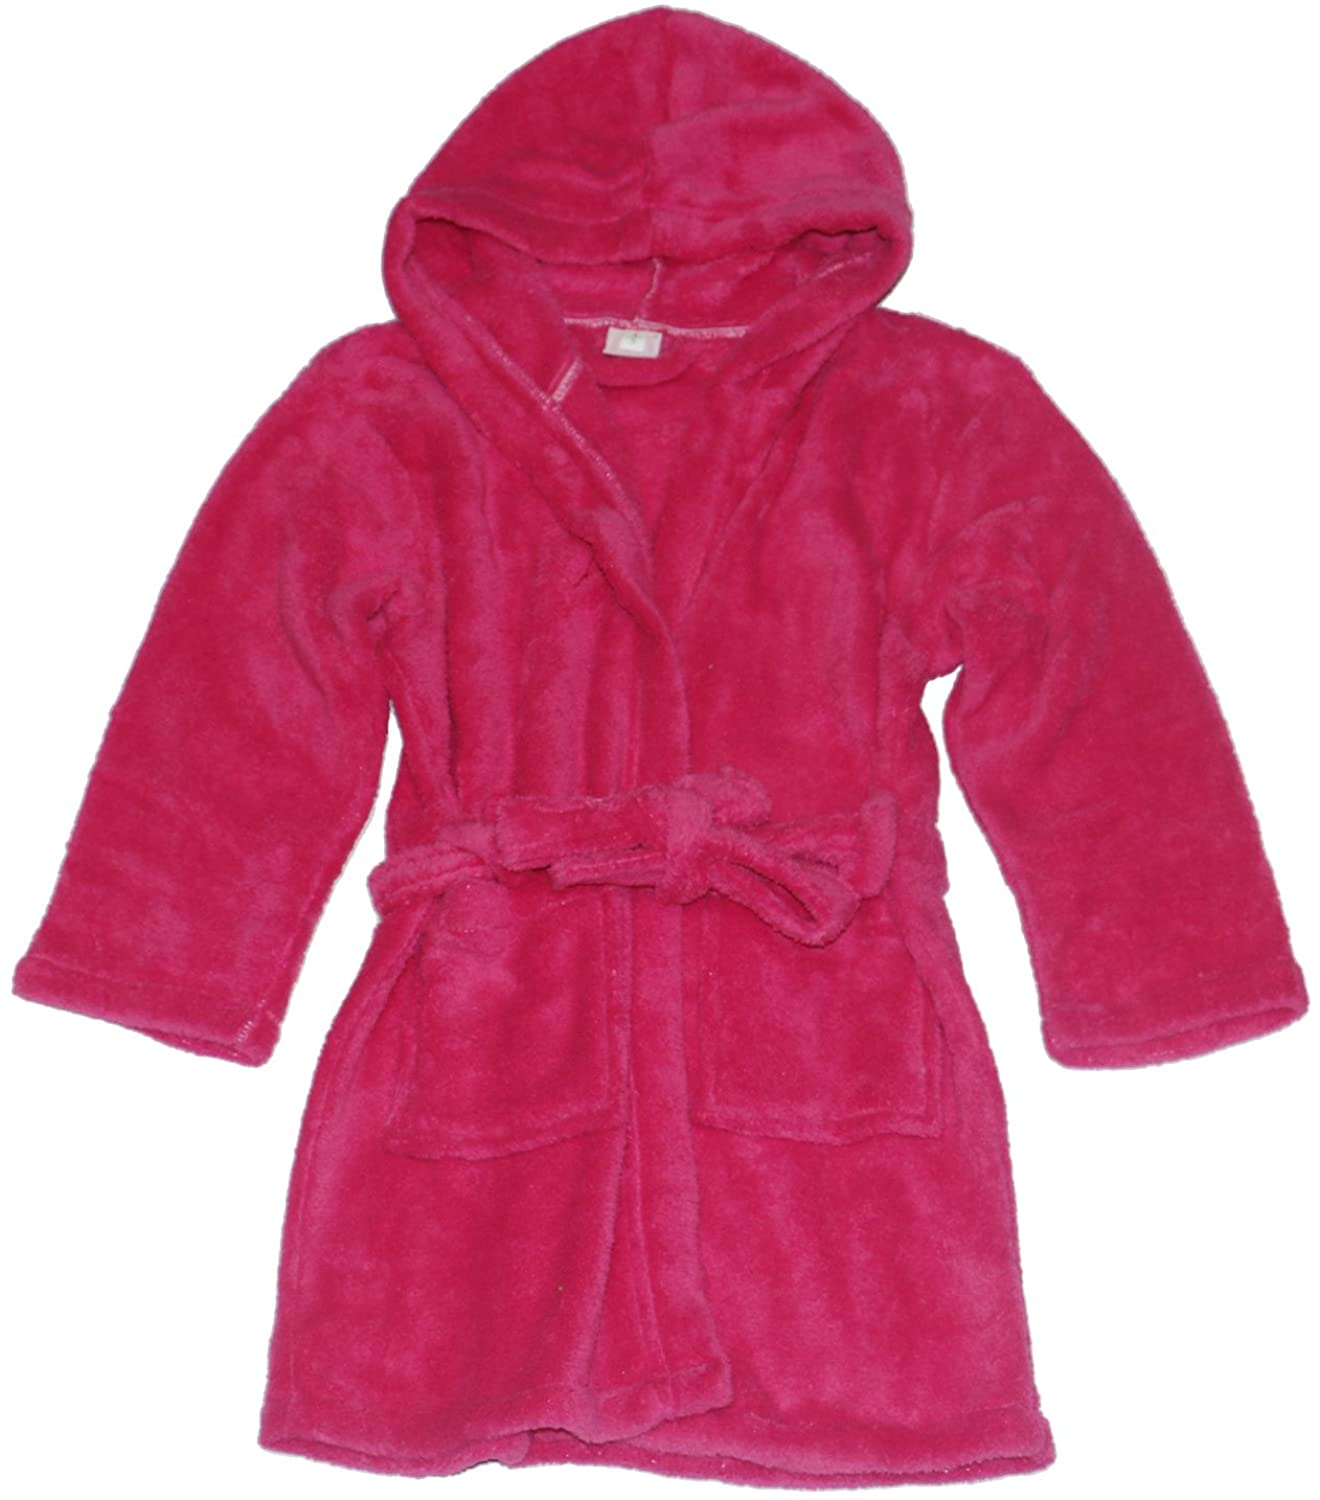 Evebright Kids Rose Red Cotton Terry Bathrobes Hooded for Girl 4-5 Years Old